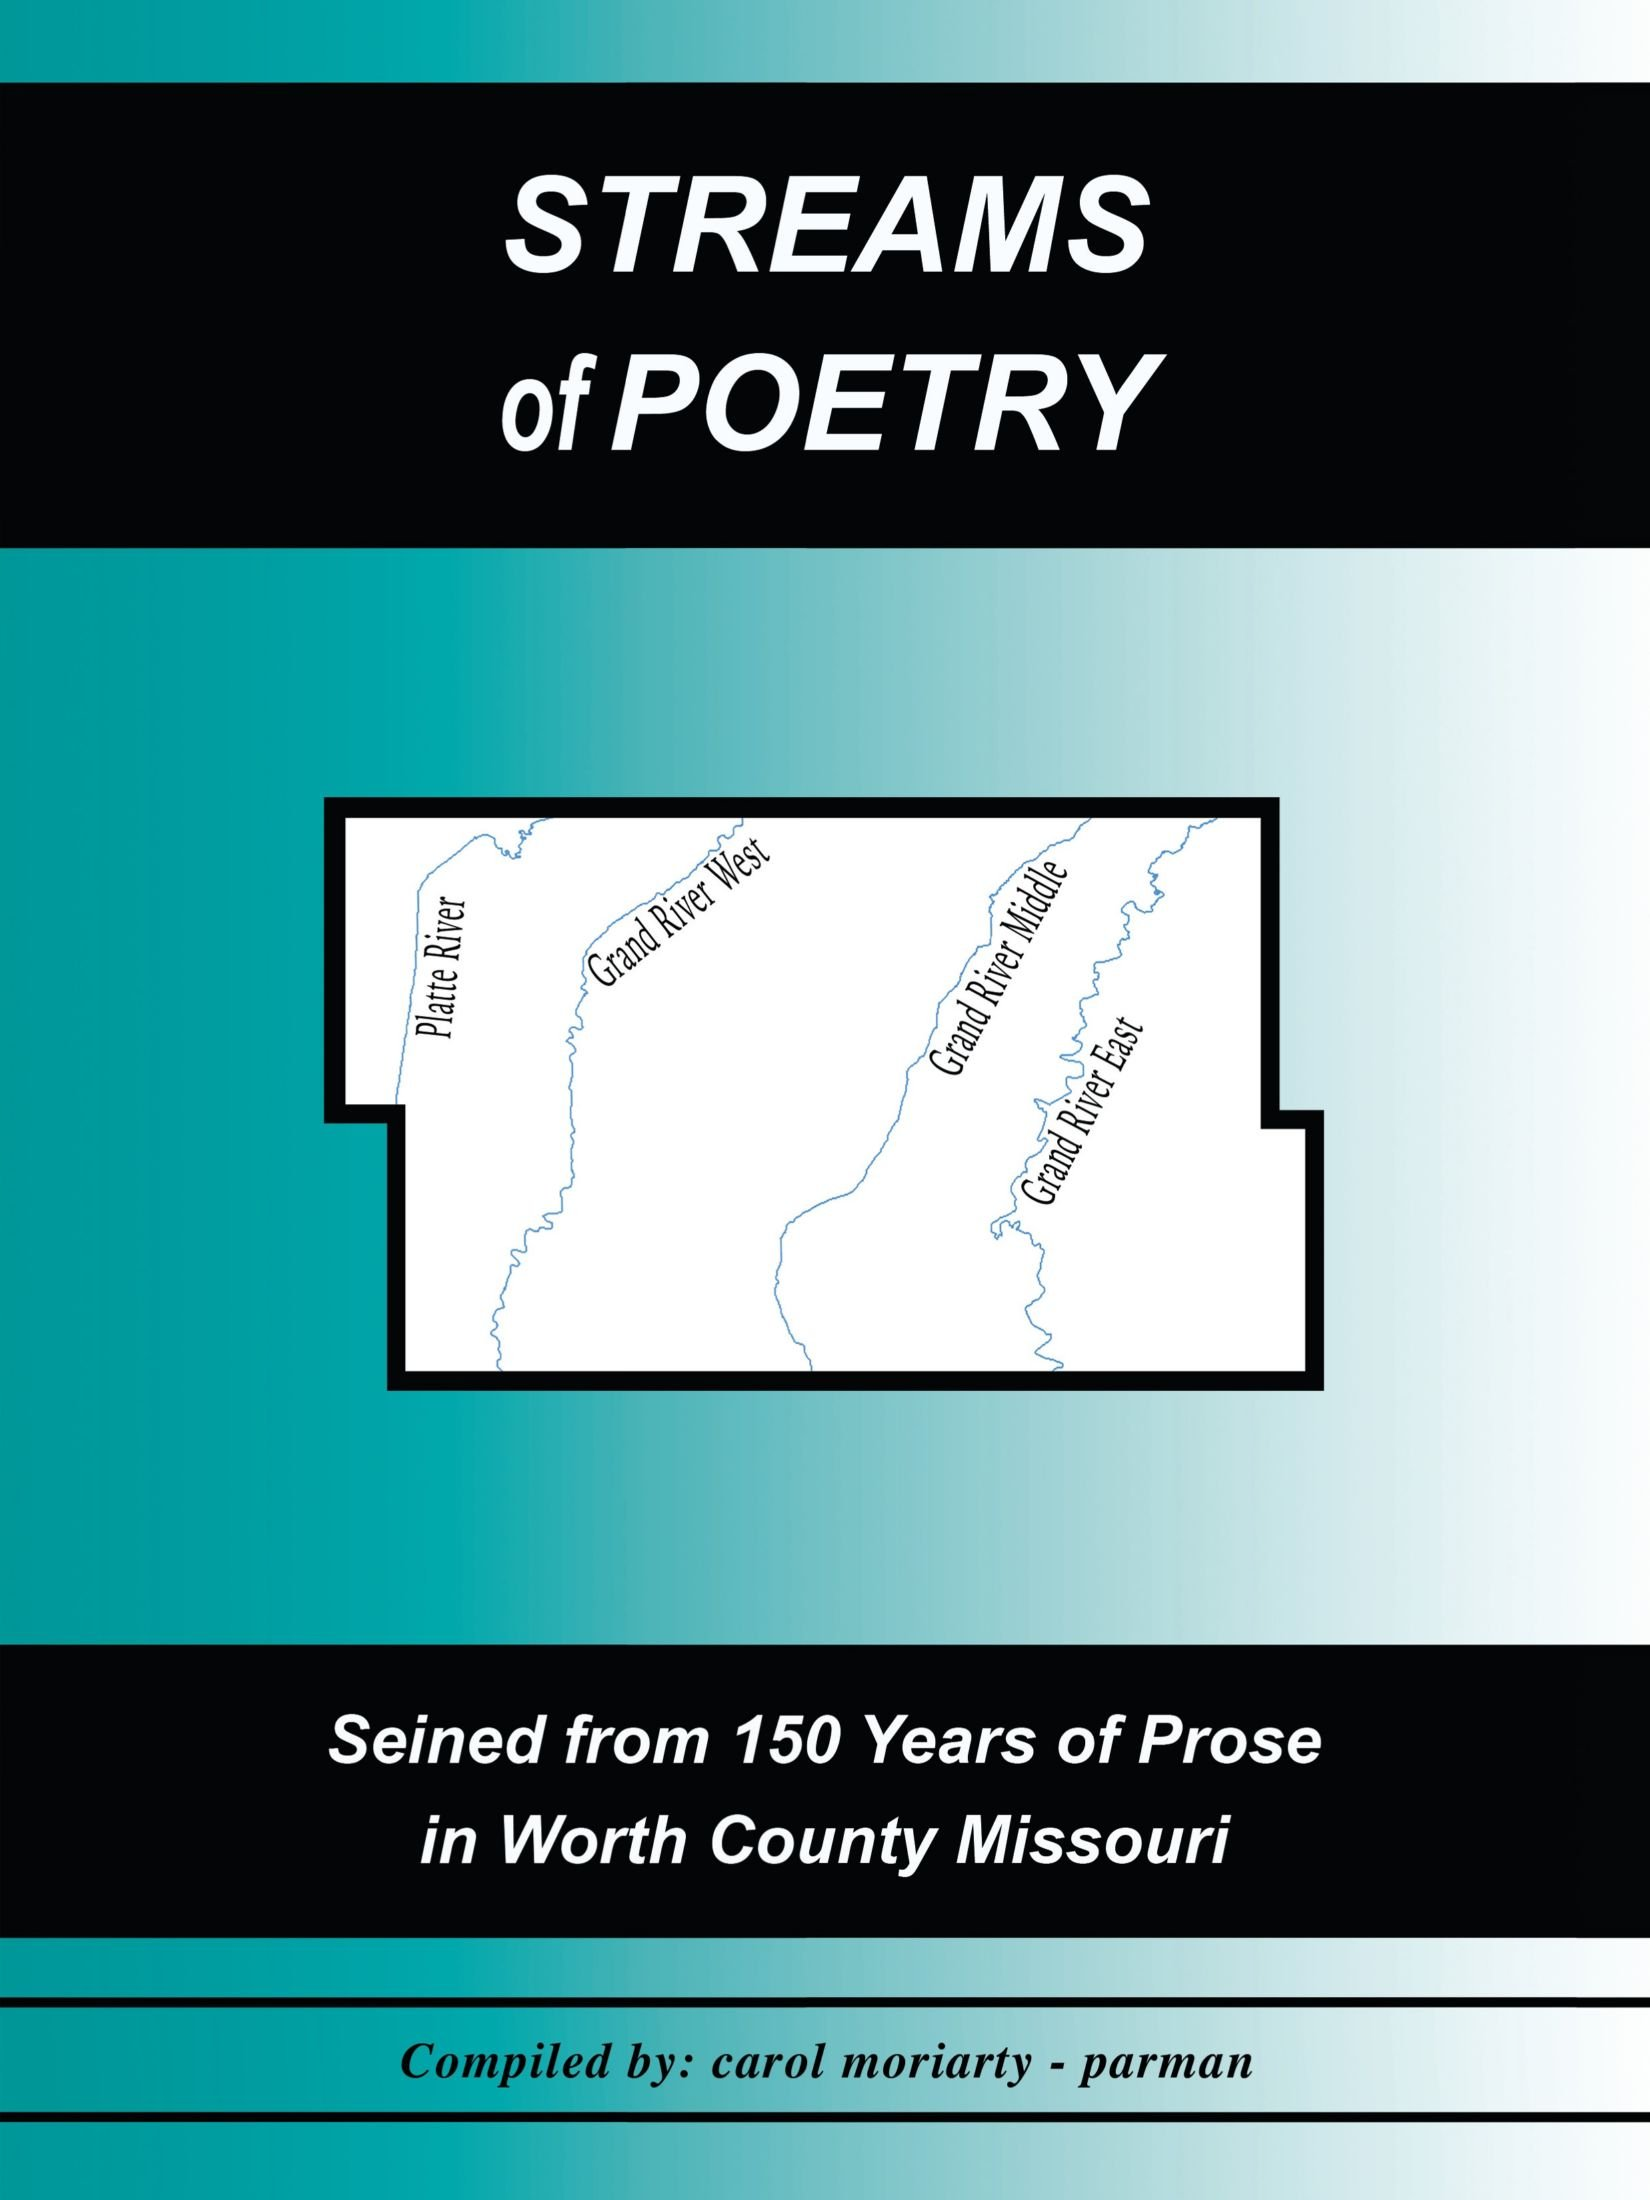 Streams of Poetry: Seined from 150 Years of Prose in Worth County Missouri